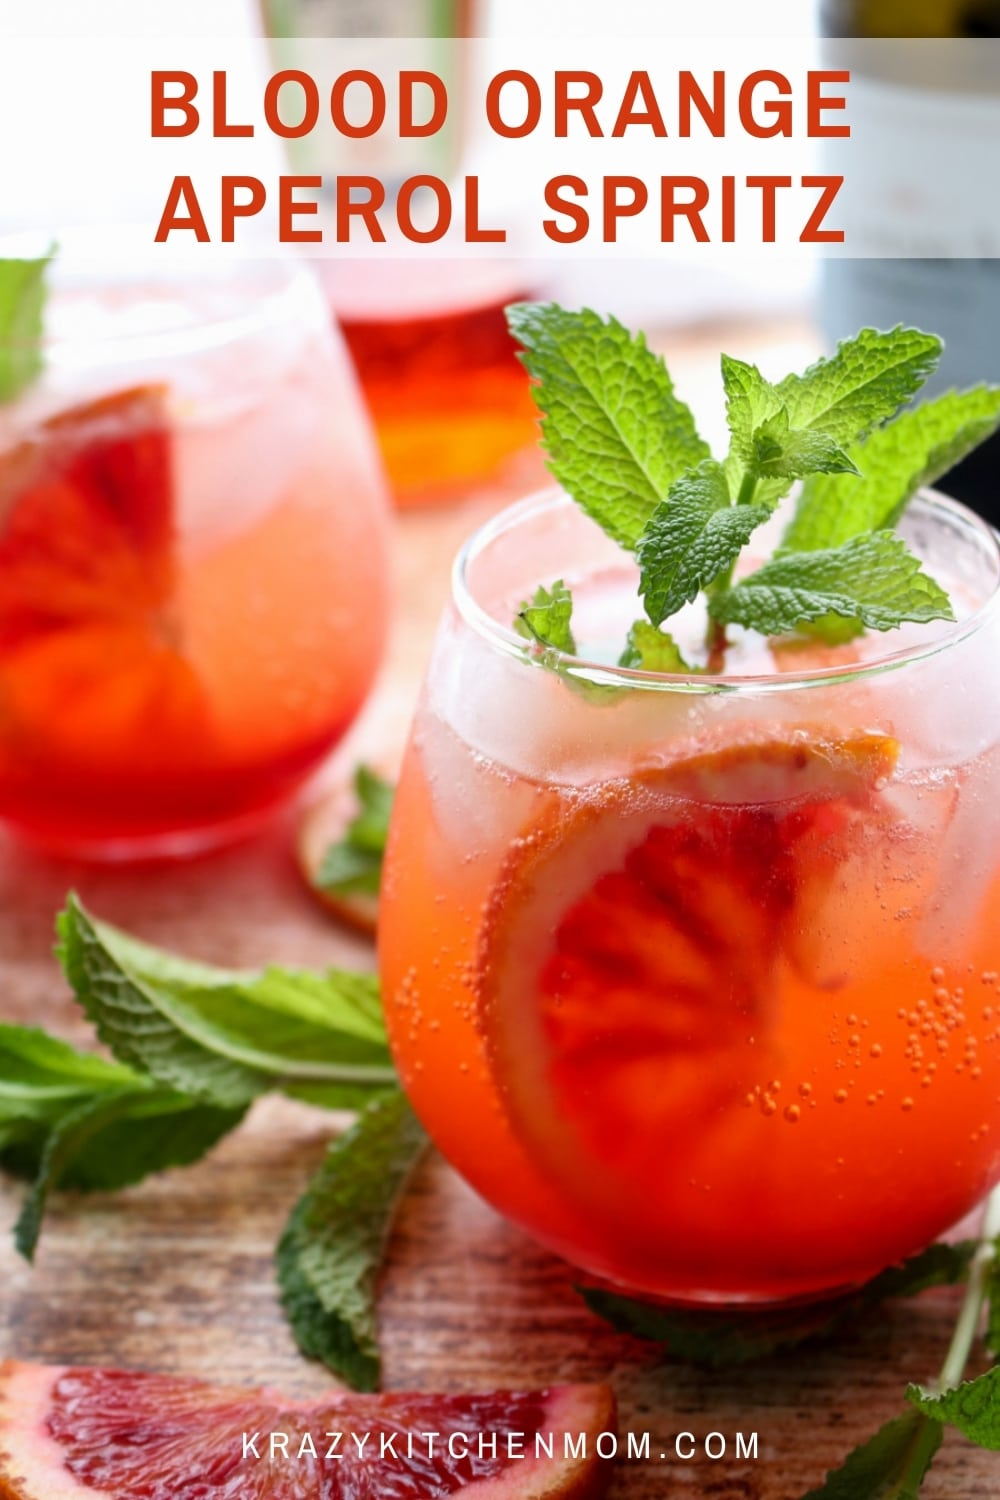 A delightful cocktail made with Aperol, Prosecco, and fresh mint. One sip of this refreshing not too sweet bubbly cocktail and you will be transported to a summer afternoon in Italy. via @krazykitchenmom